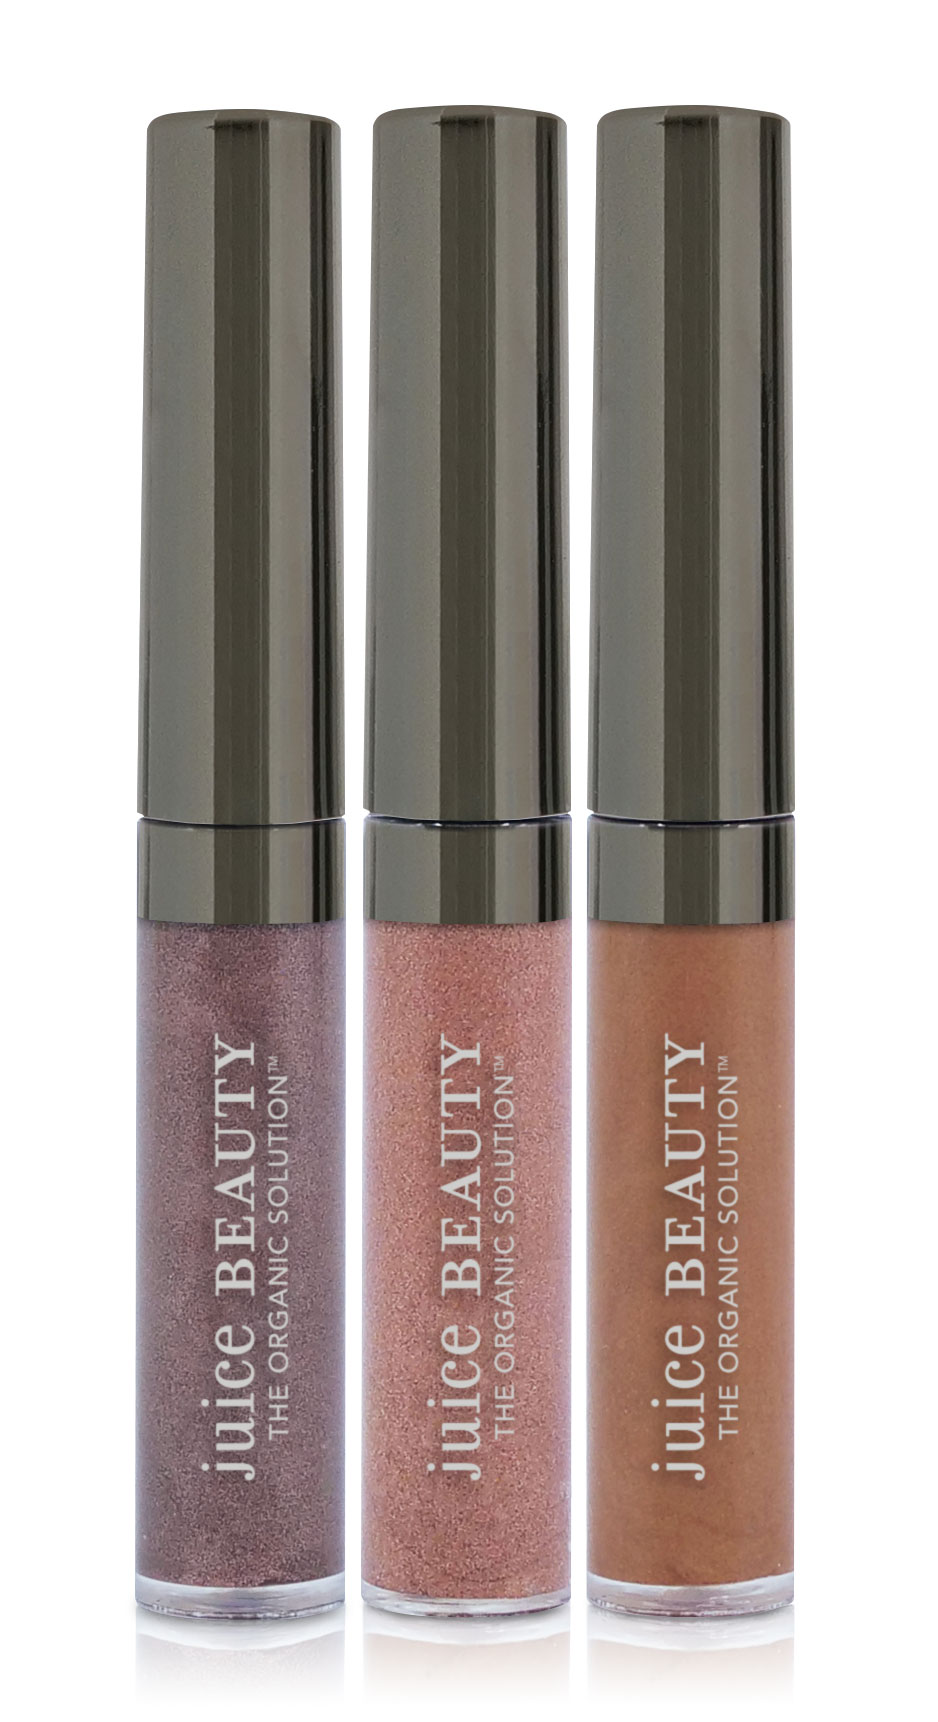 Juice Beauty Phyto-Pigments Jelly Eyeshadows Best New Products - Multi-tasking at its finest, these cocktail-inspired shadows offer crease-proof wear and are also infused with skincare ingredients like organic jojoba, sunflower and shea butter for hydration. $24 each, juicebeauty.com